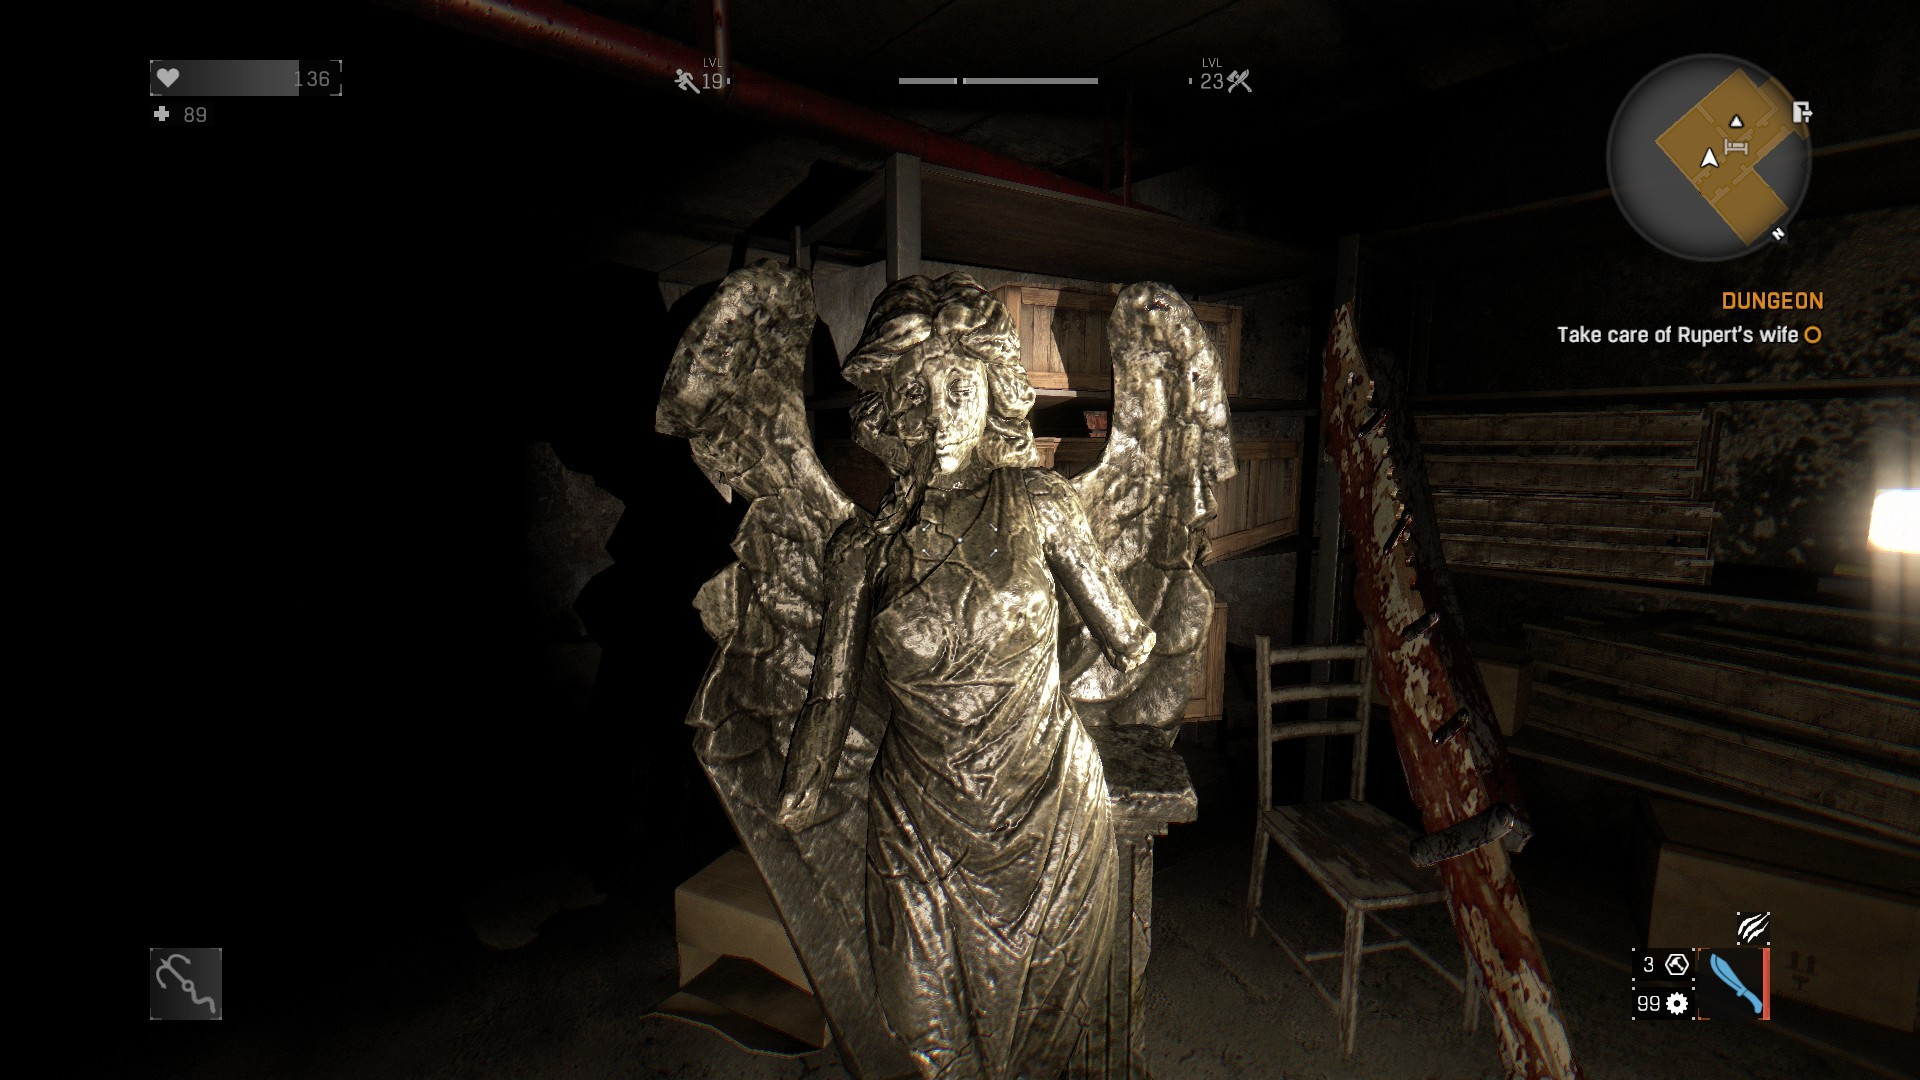 I thought it was a Weeping Angel for just a second when I found it.